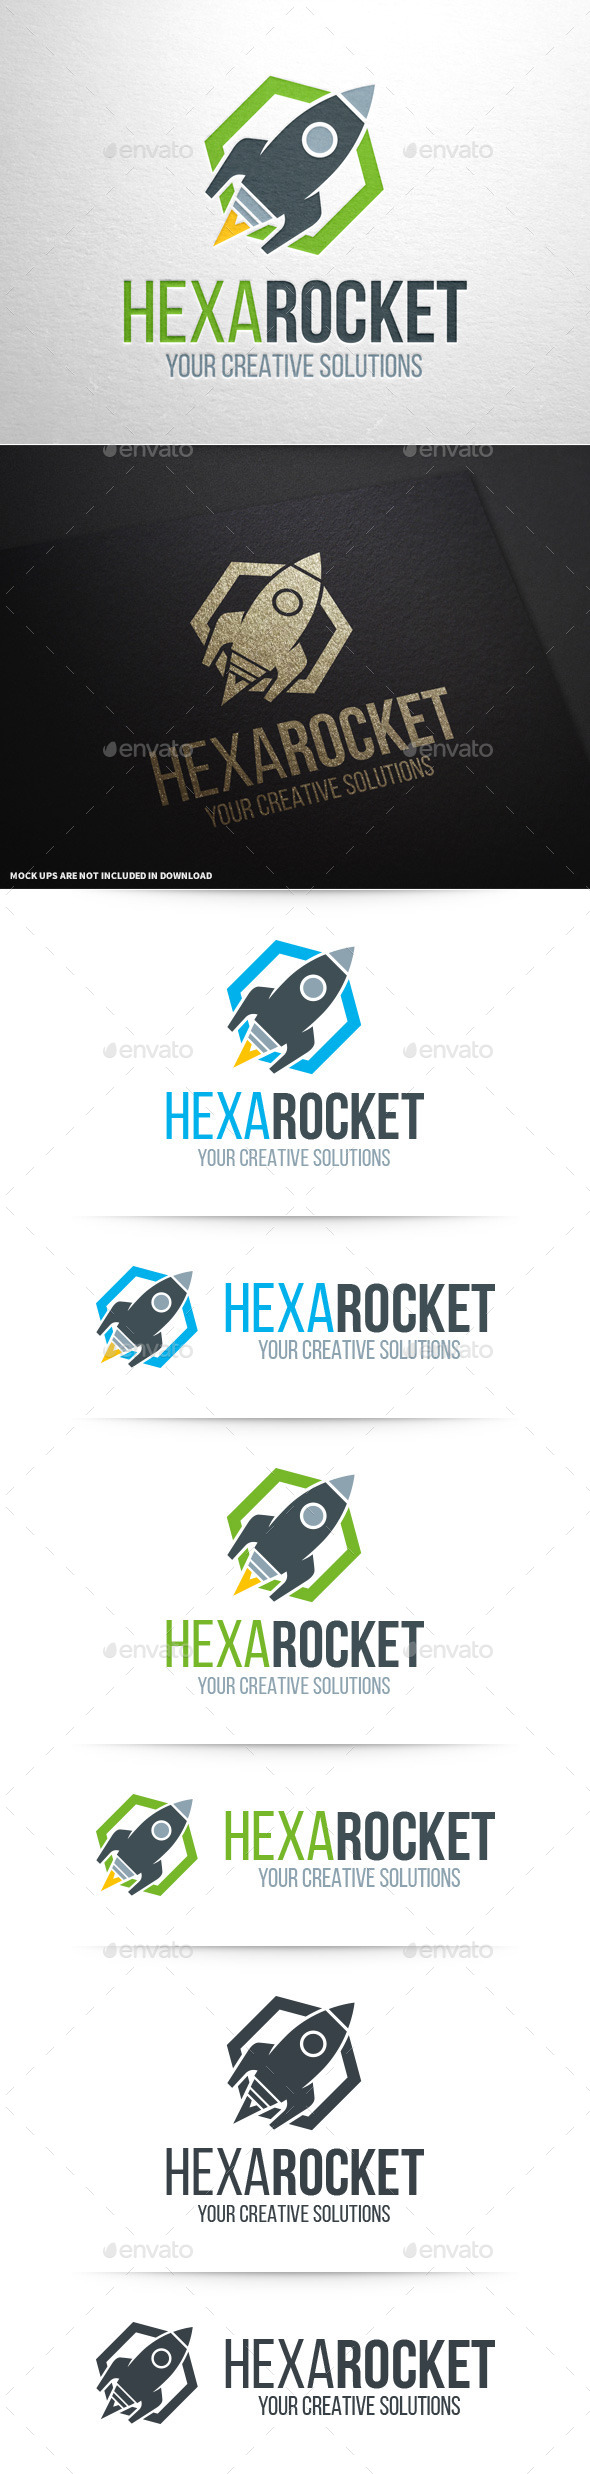 GraphicRiver Hexa Rocket Logo Template 11210144